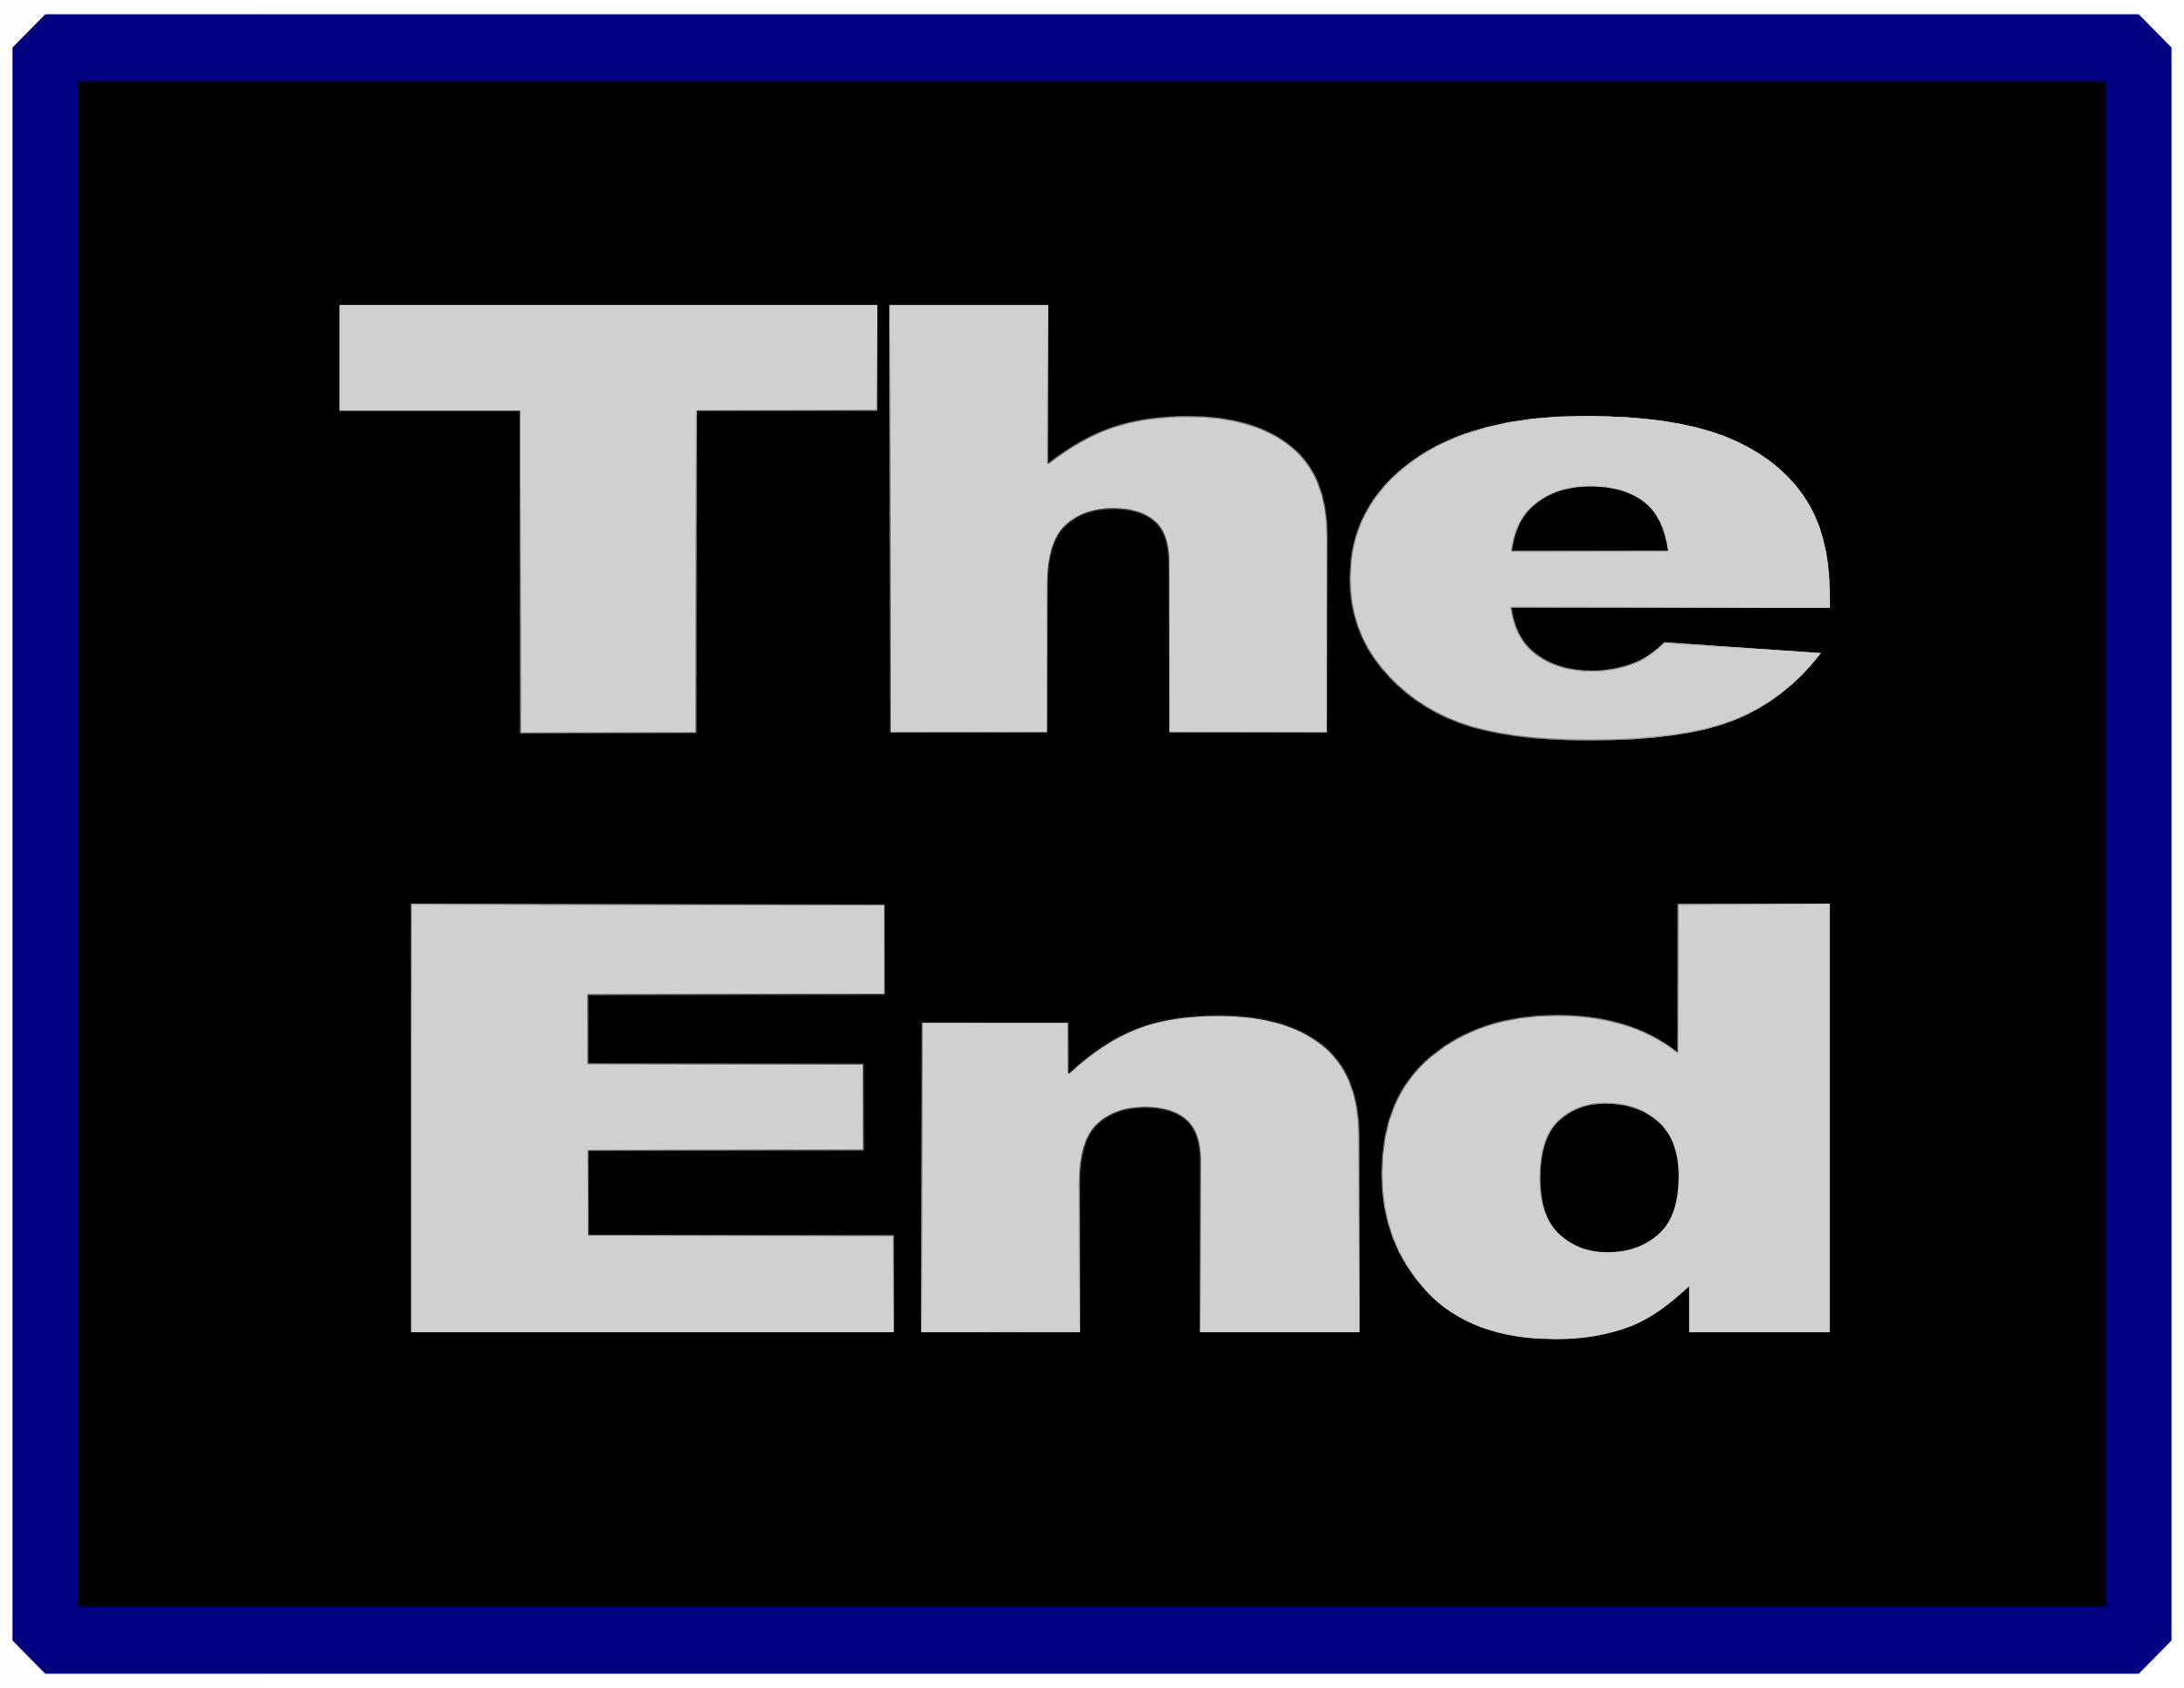 The end clipart. Big image png